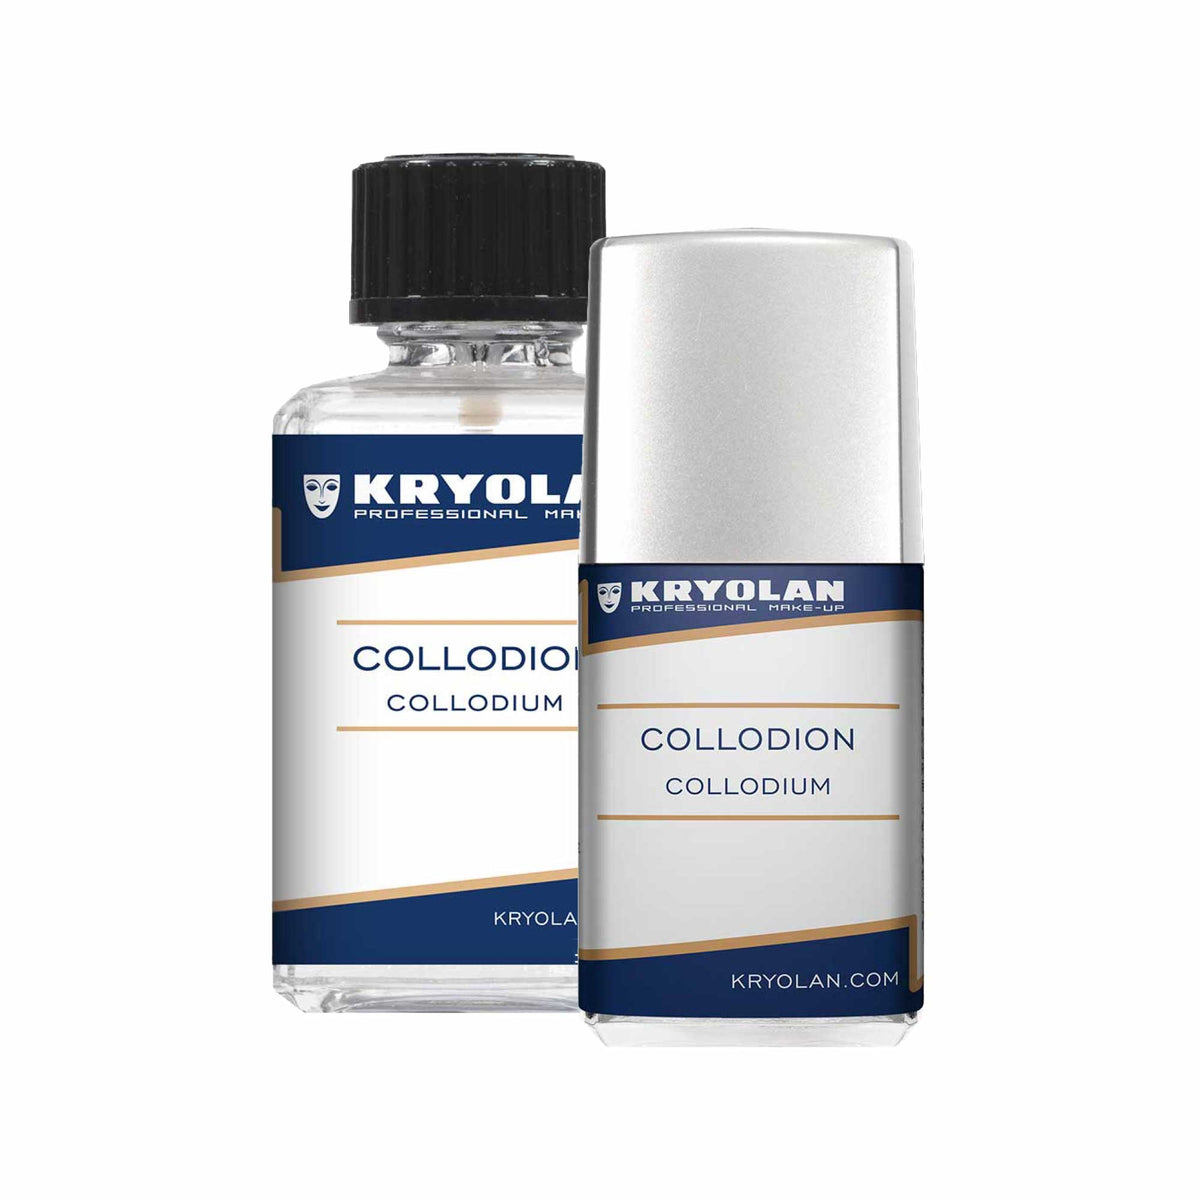 Kryolan Collodion - Scarring Liquid